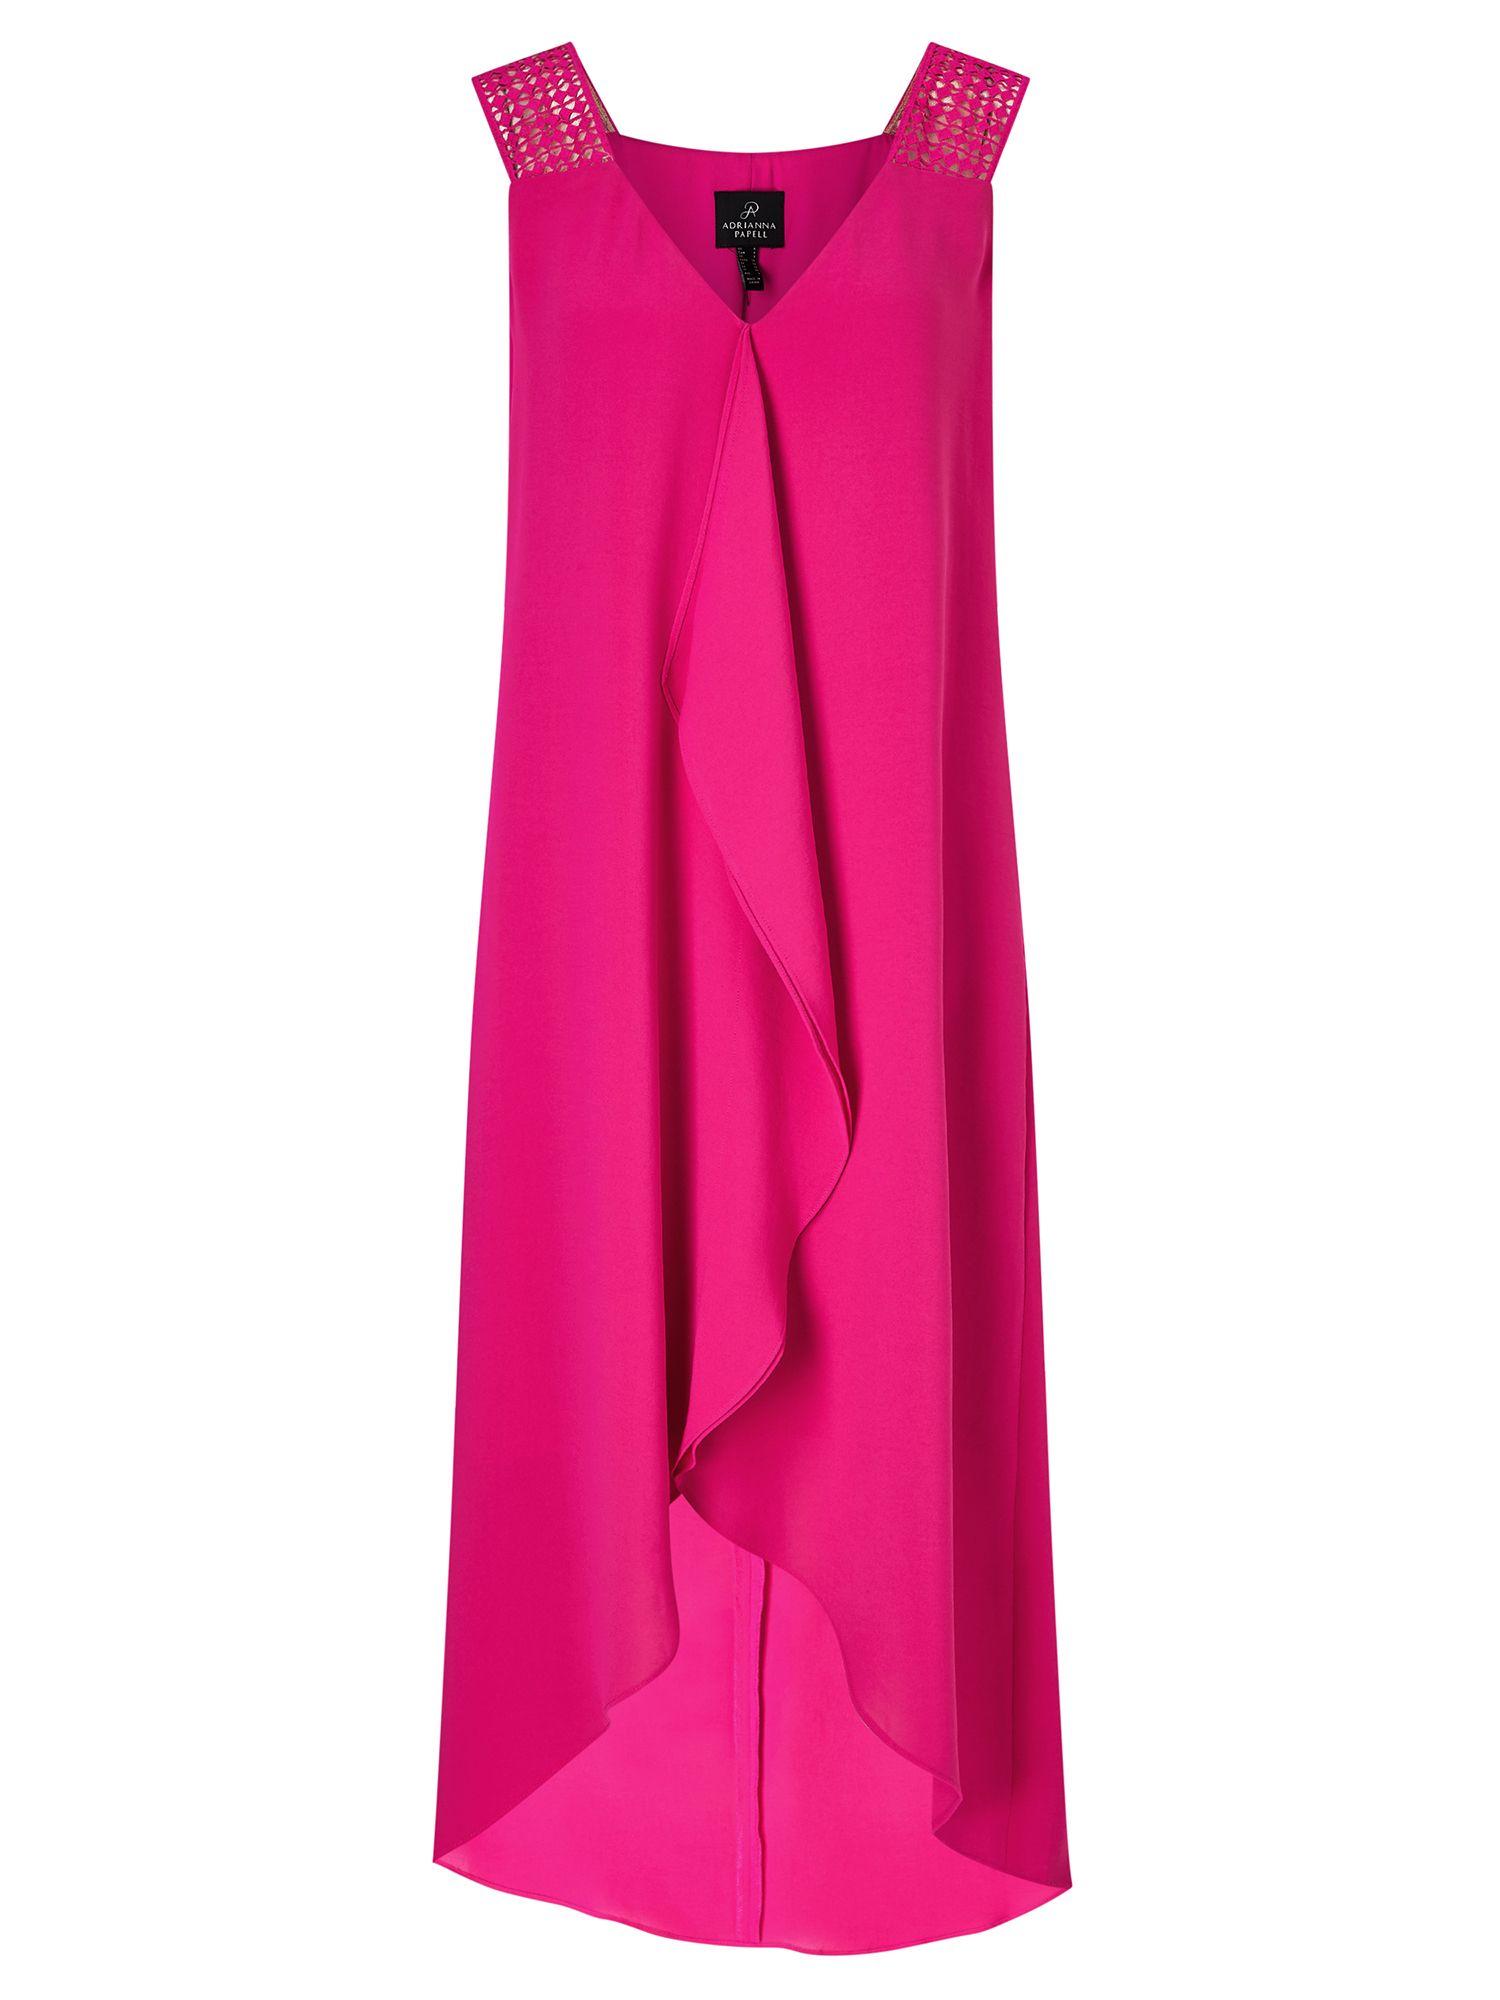 Adrianna Papell Drape crepe dress, Pink